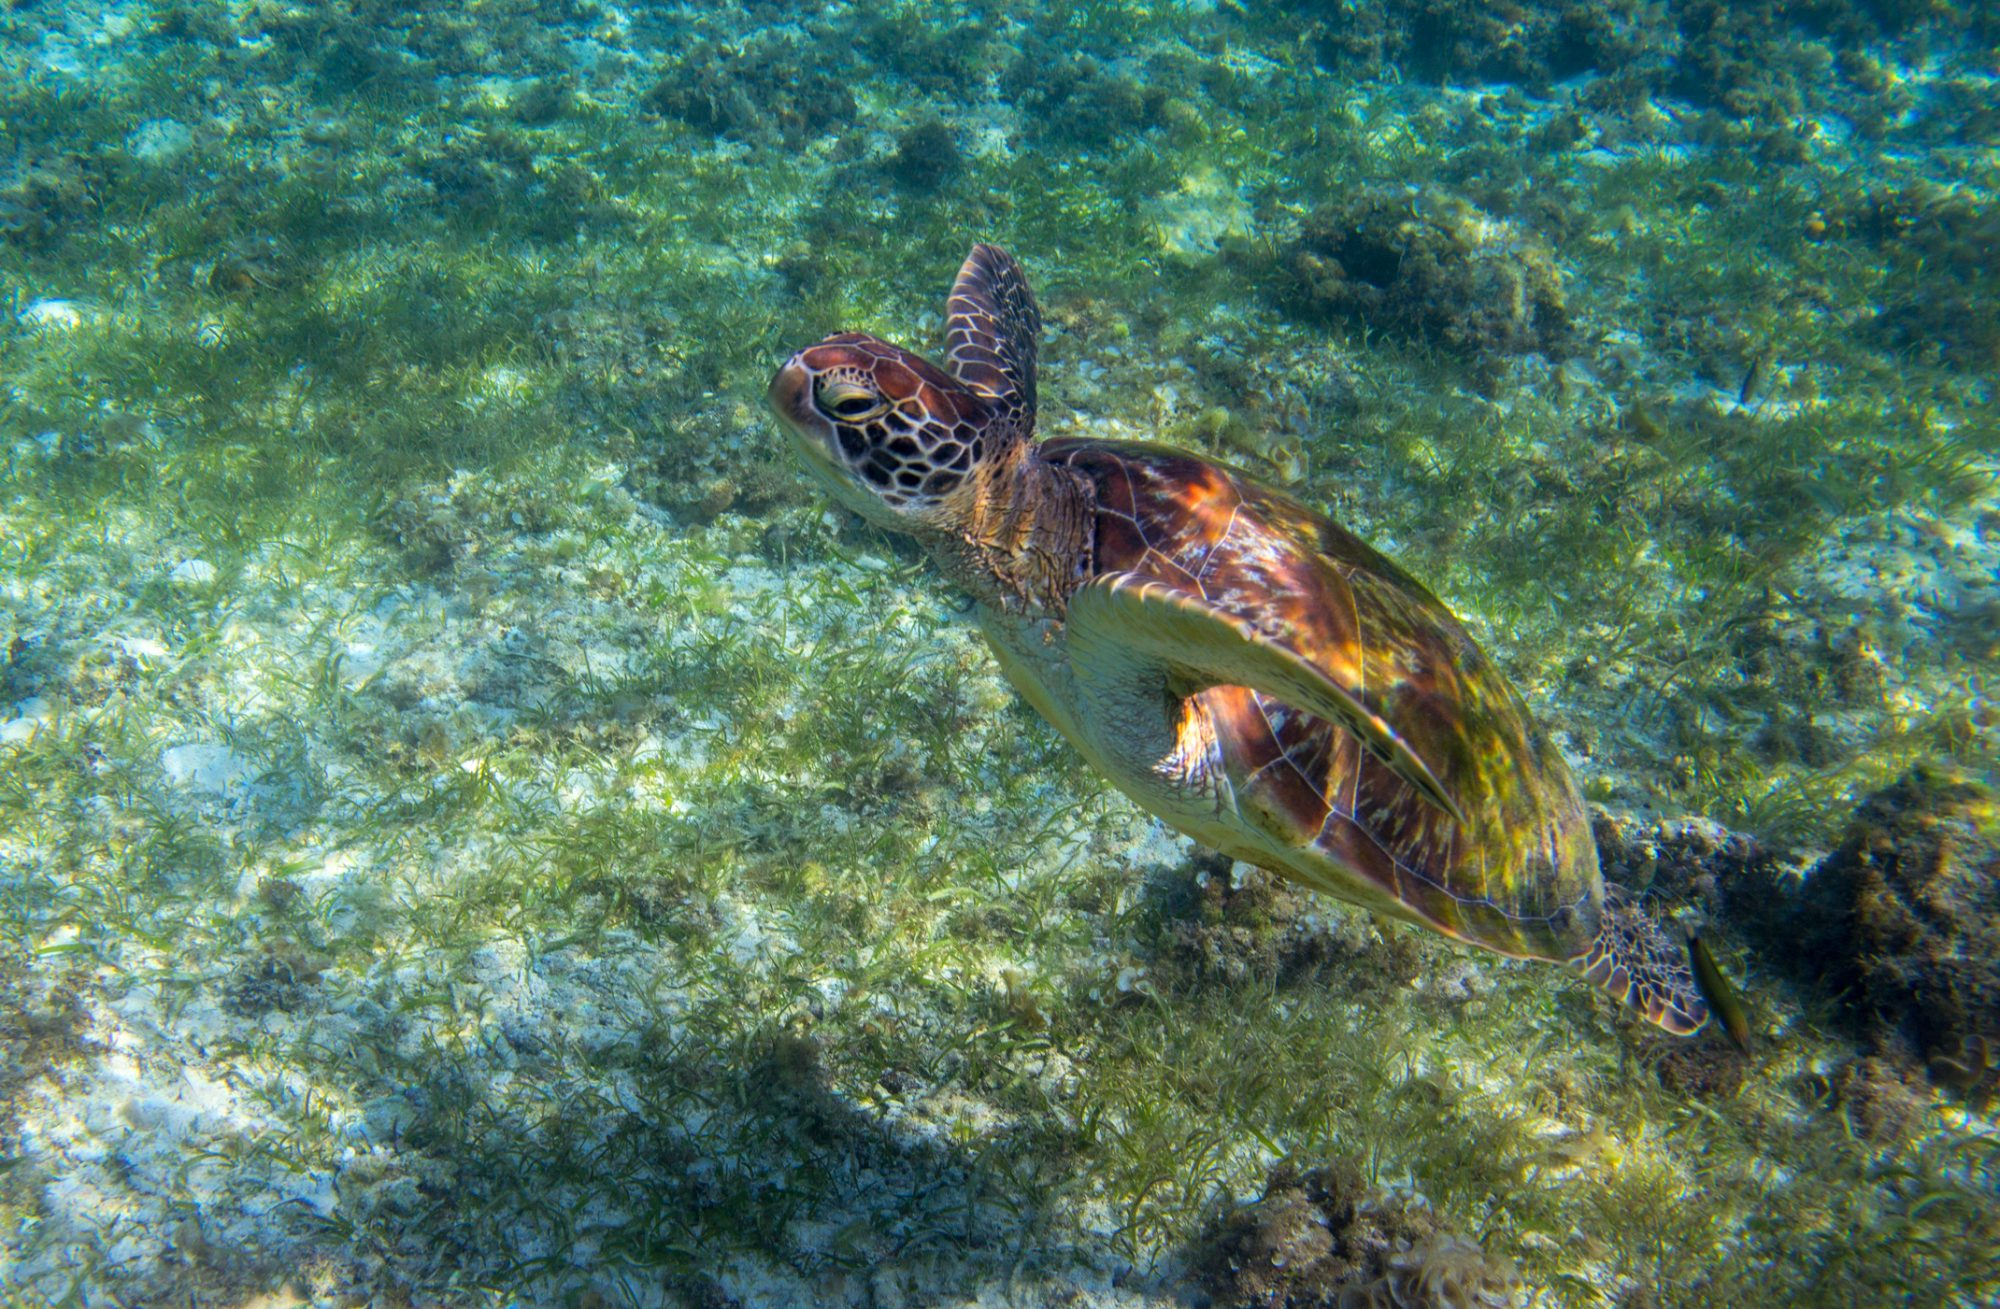 Can innovation and new technology tackle environmental issues in the marine environment?